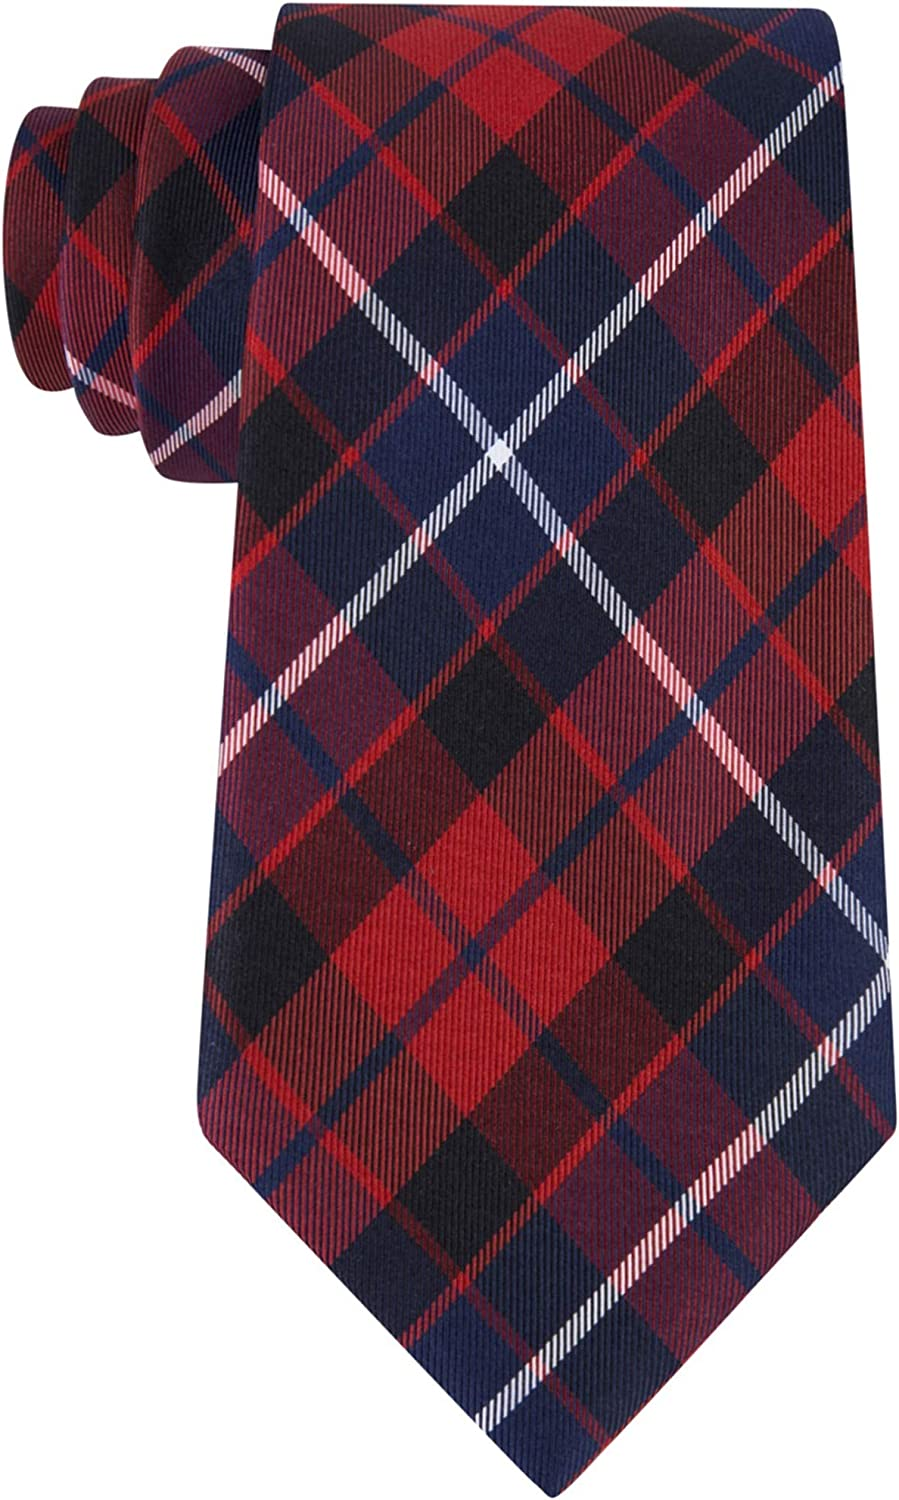 Tommy Hilfiger Mens Large New York Mall Necktie Plaid Self-Tied Import